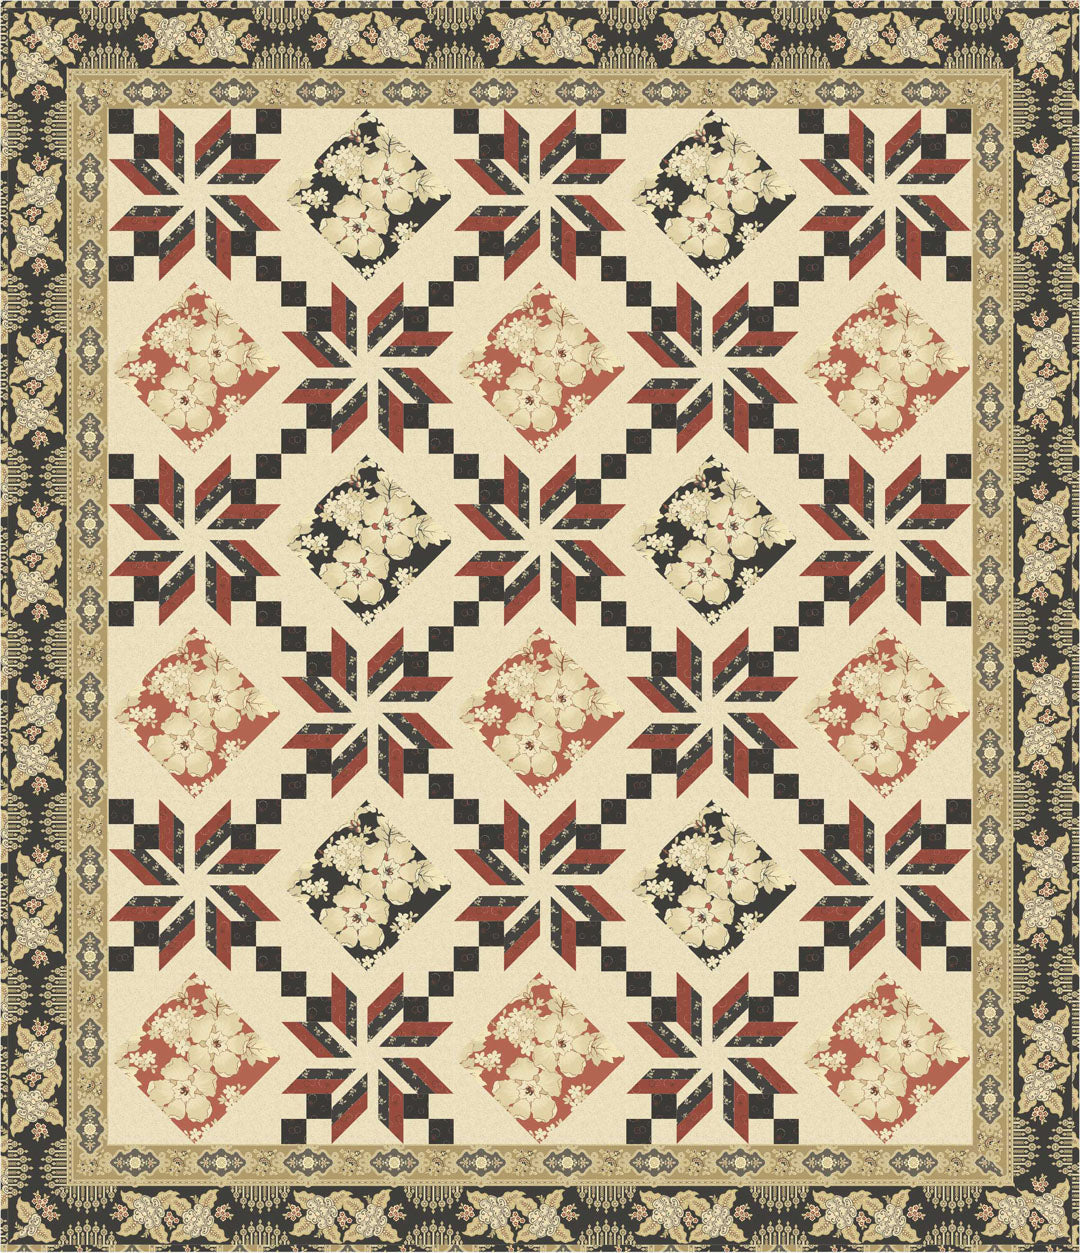 Eden Quilt<br>by Toby Lischko<br>Vintage Prestige Collection<br>Pattern for Purchase<br>Available January 2019